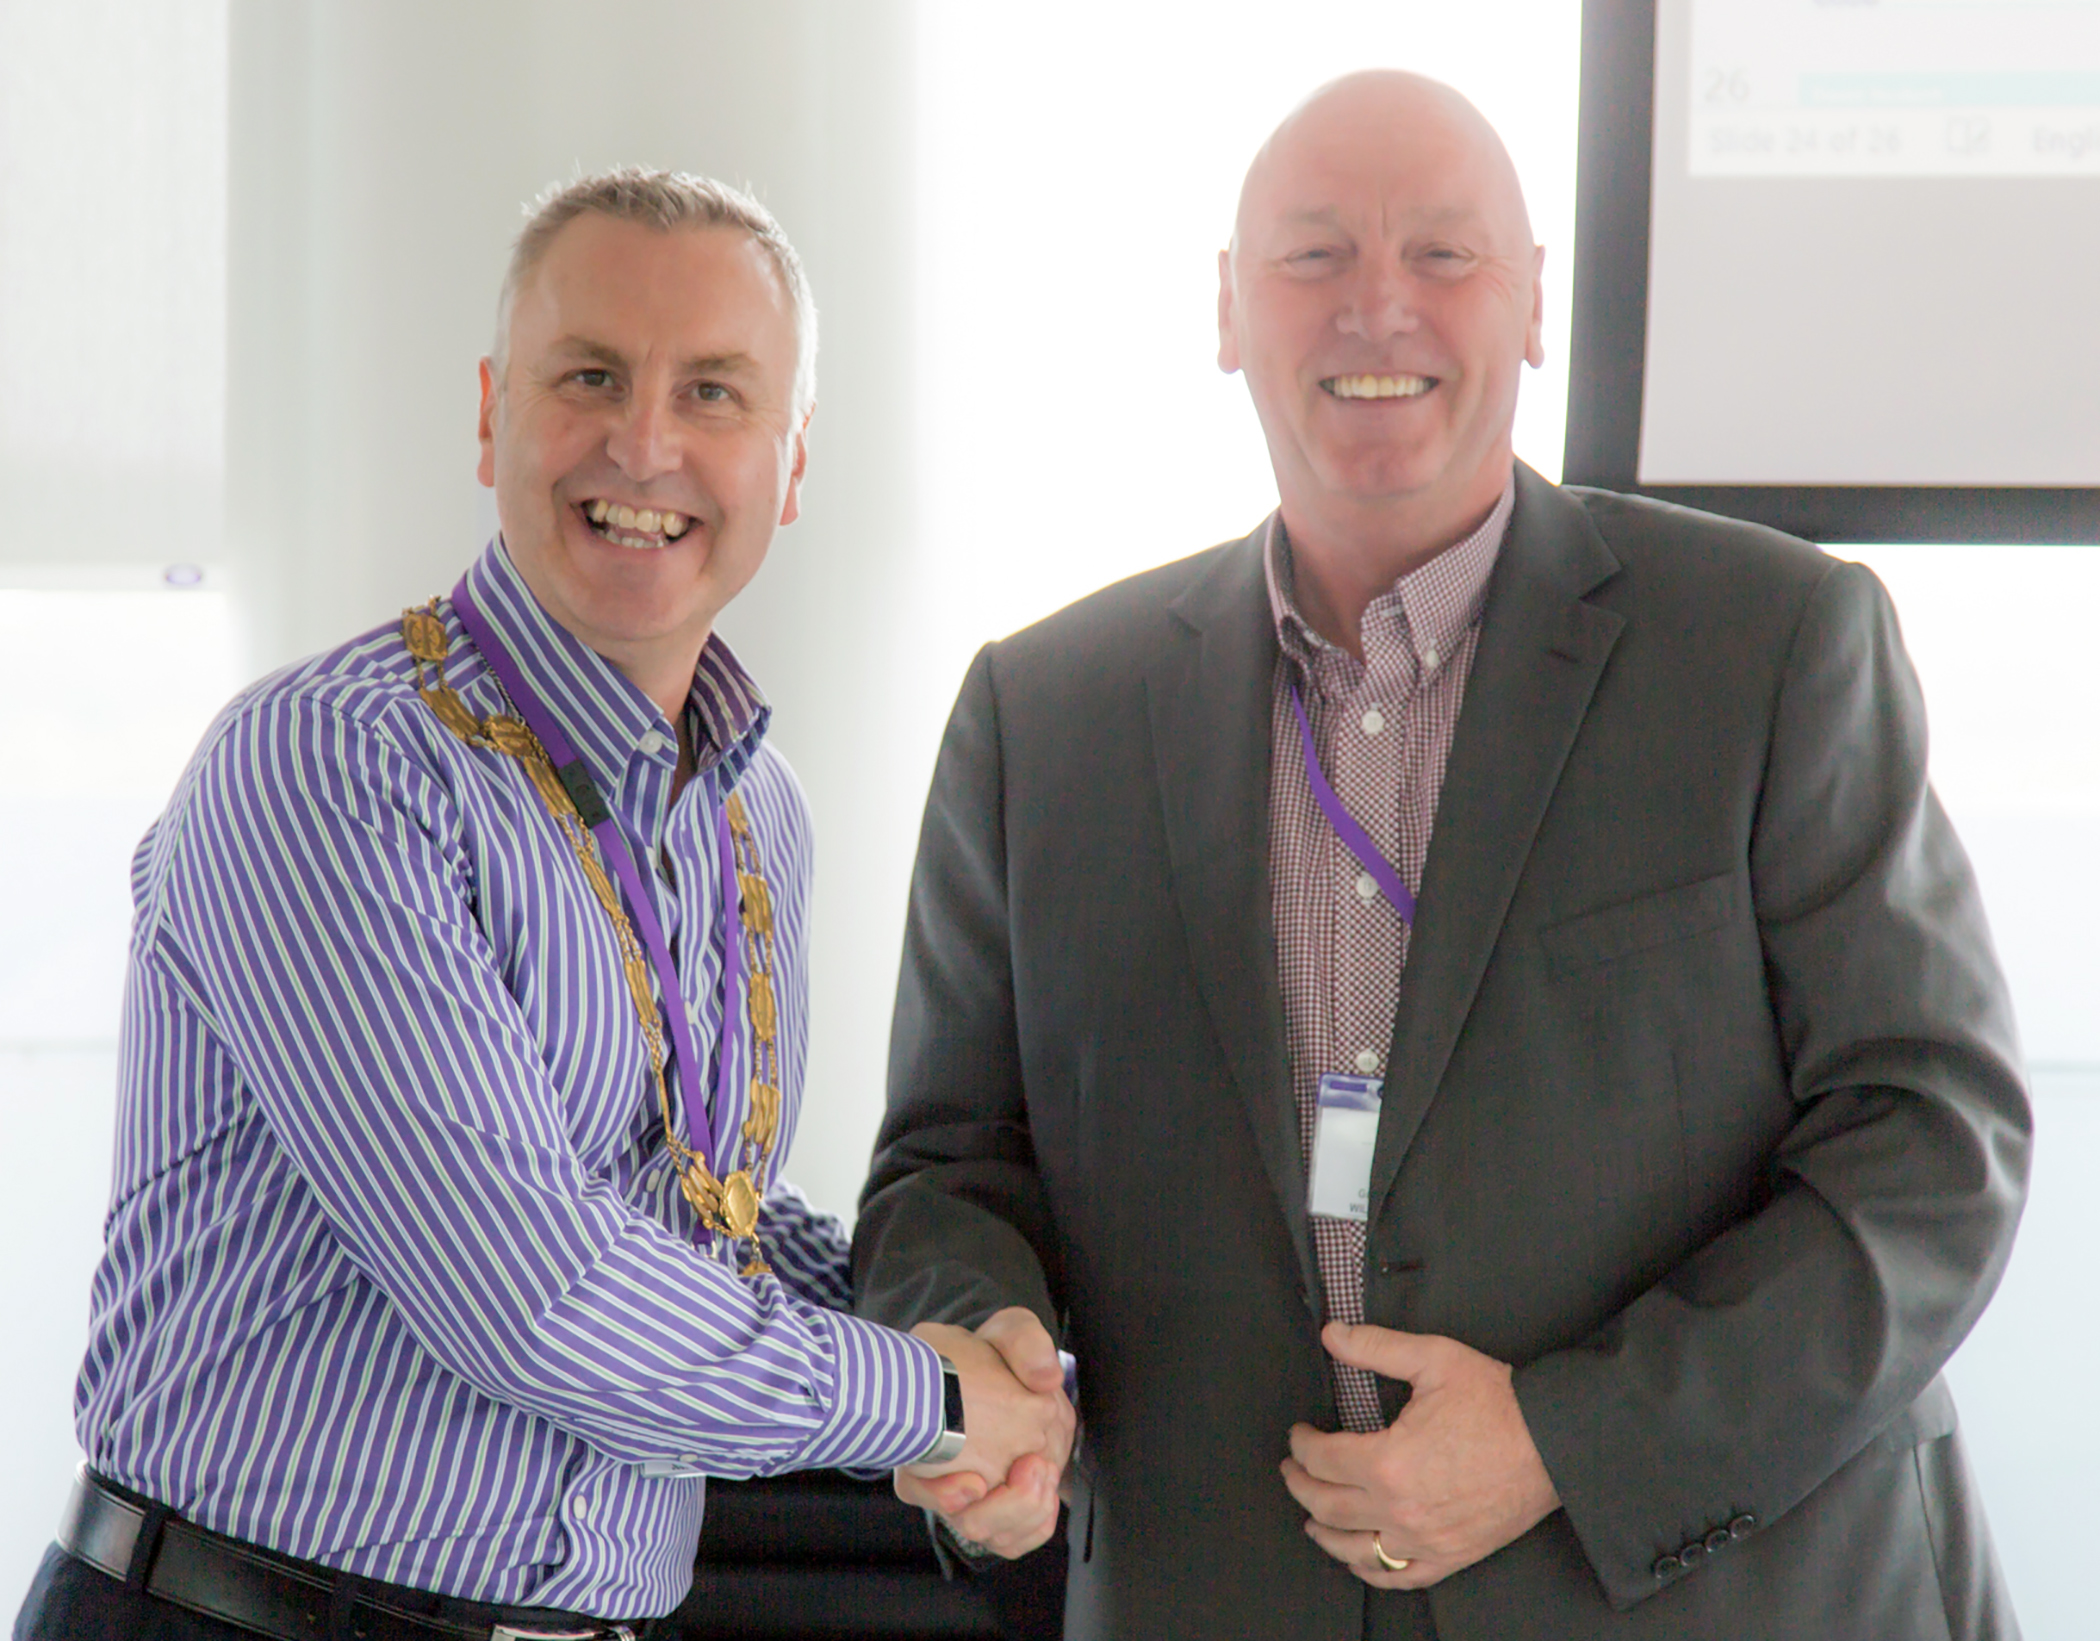 Gary Downes becomes President of the AEMT